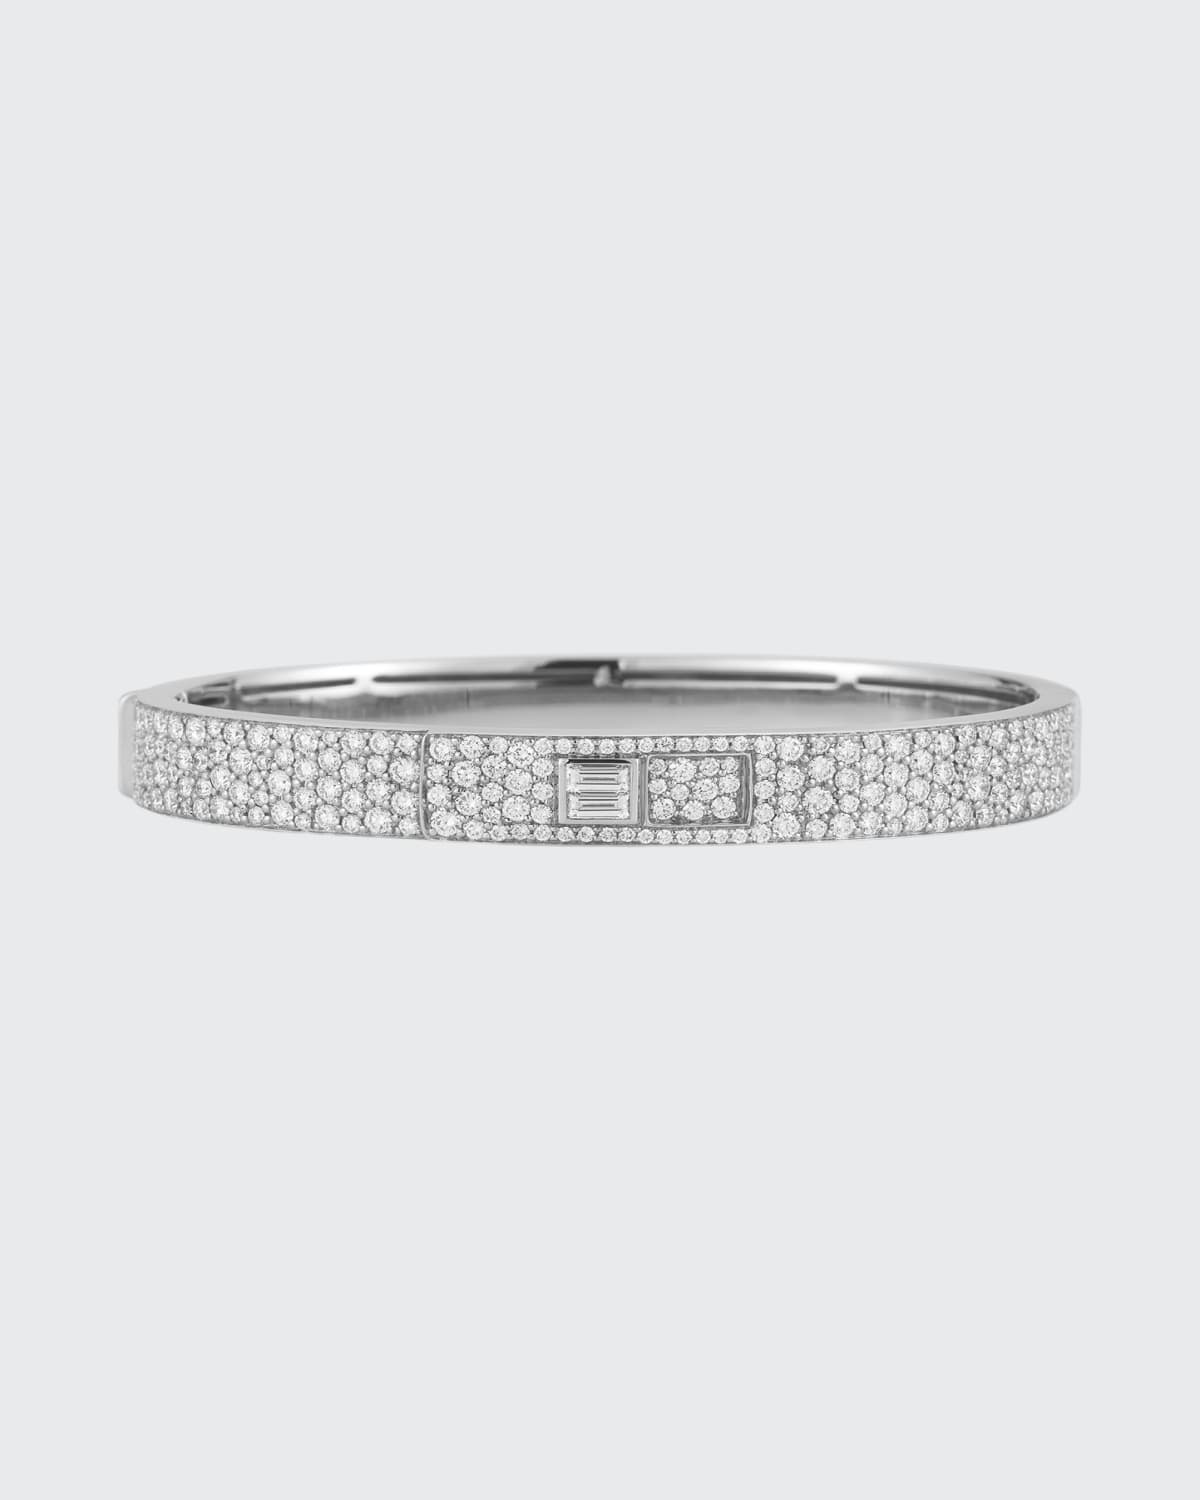 Prive Luxe 18k White Gold Diamond Pave and Baguette Cuff